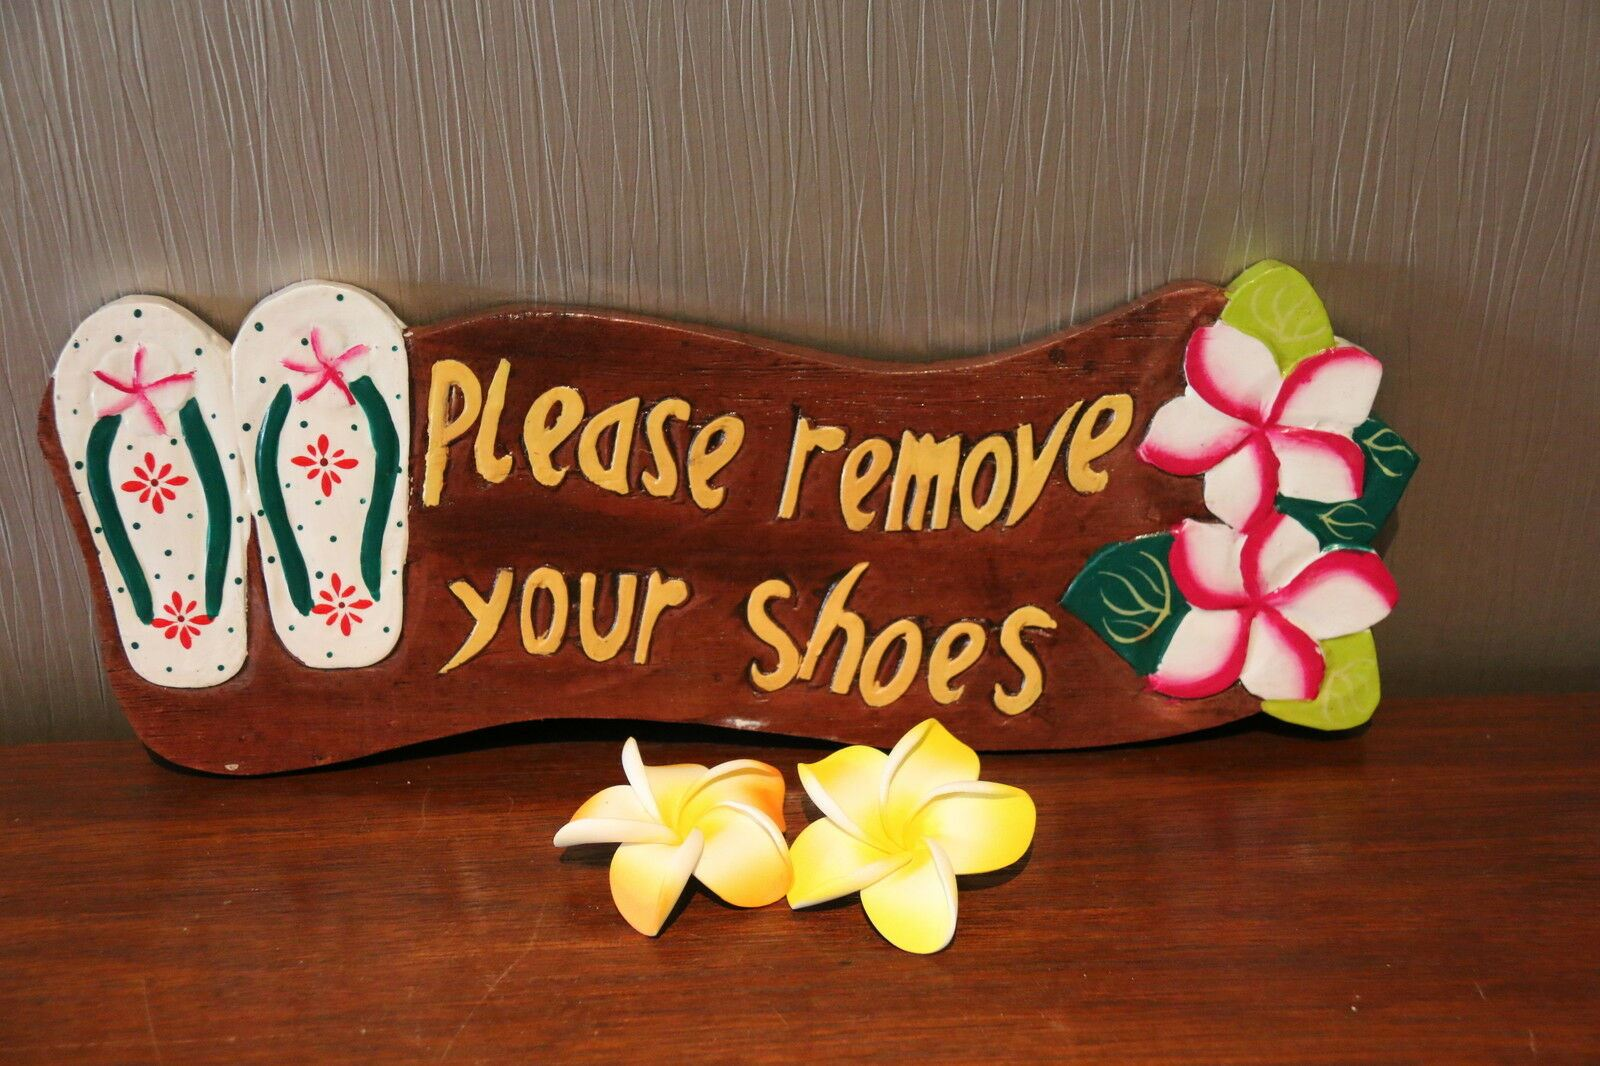 NEW Bali Hand Crafted PLEASE REMOVE SHOES Sign -  Many Colours Available